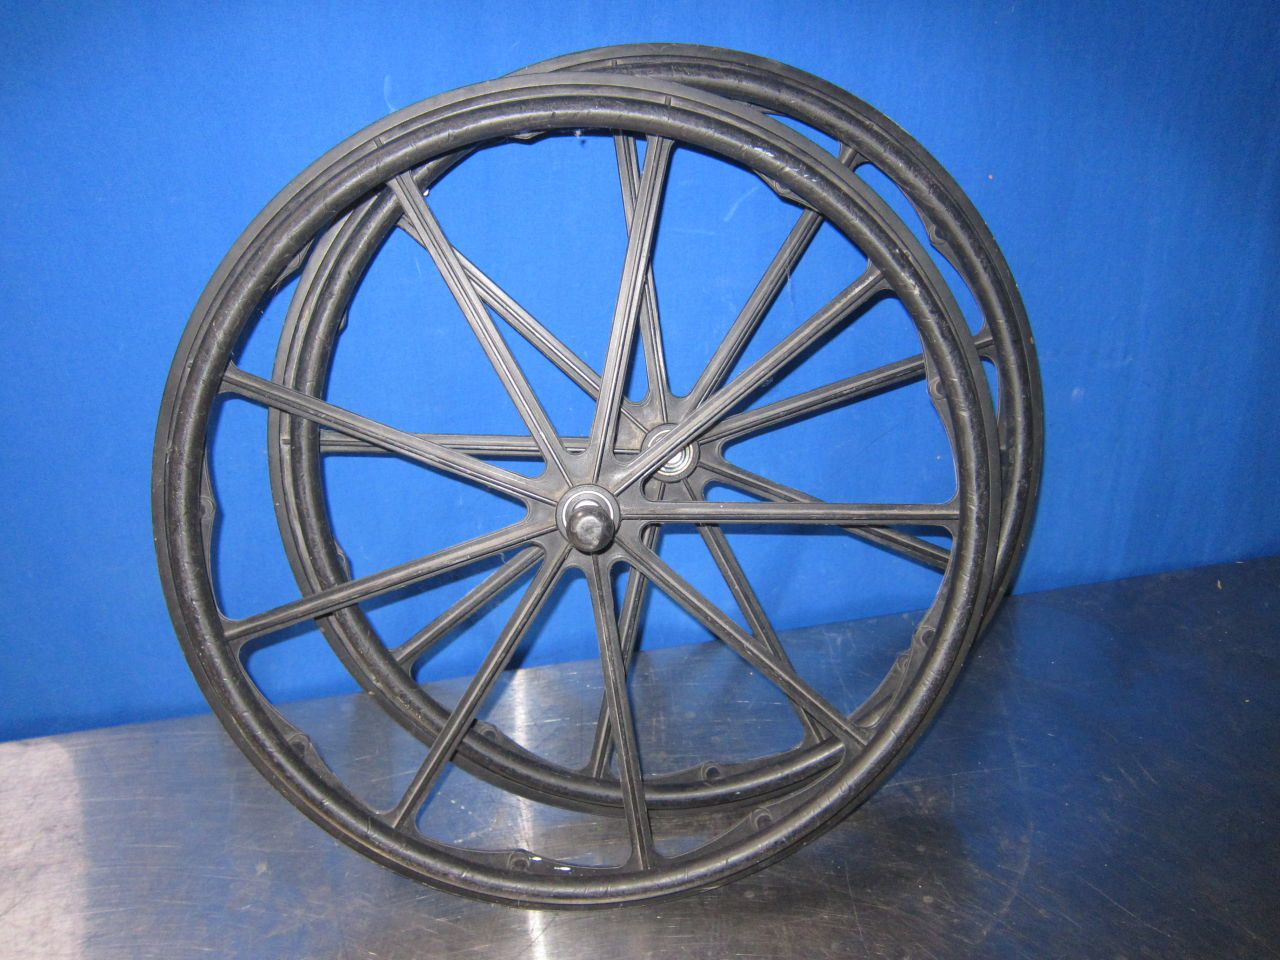 Wheels for Wheelchairs - Lot of 2 Wheelchair